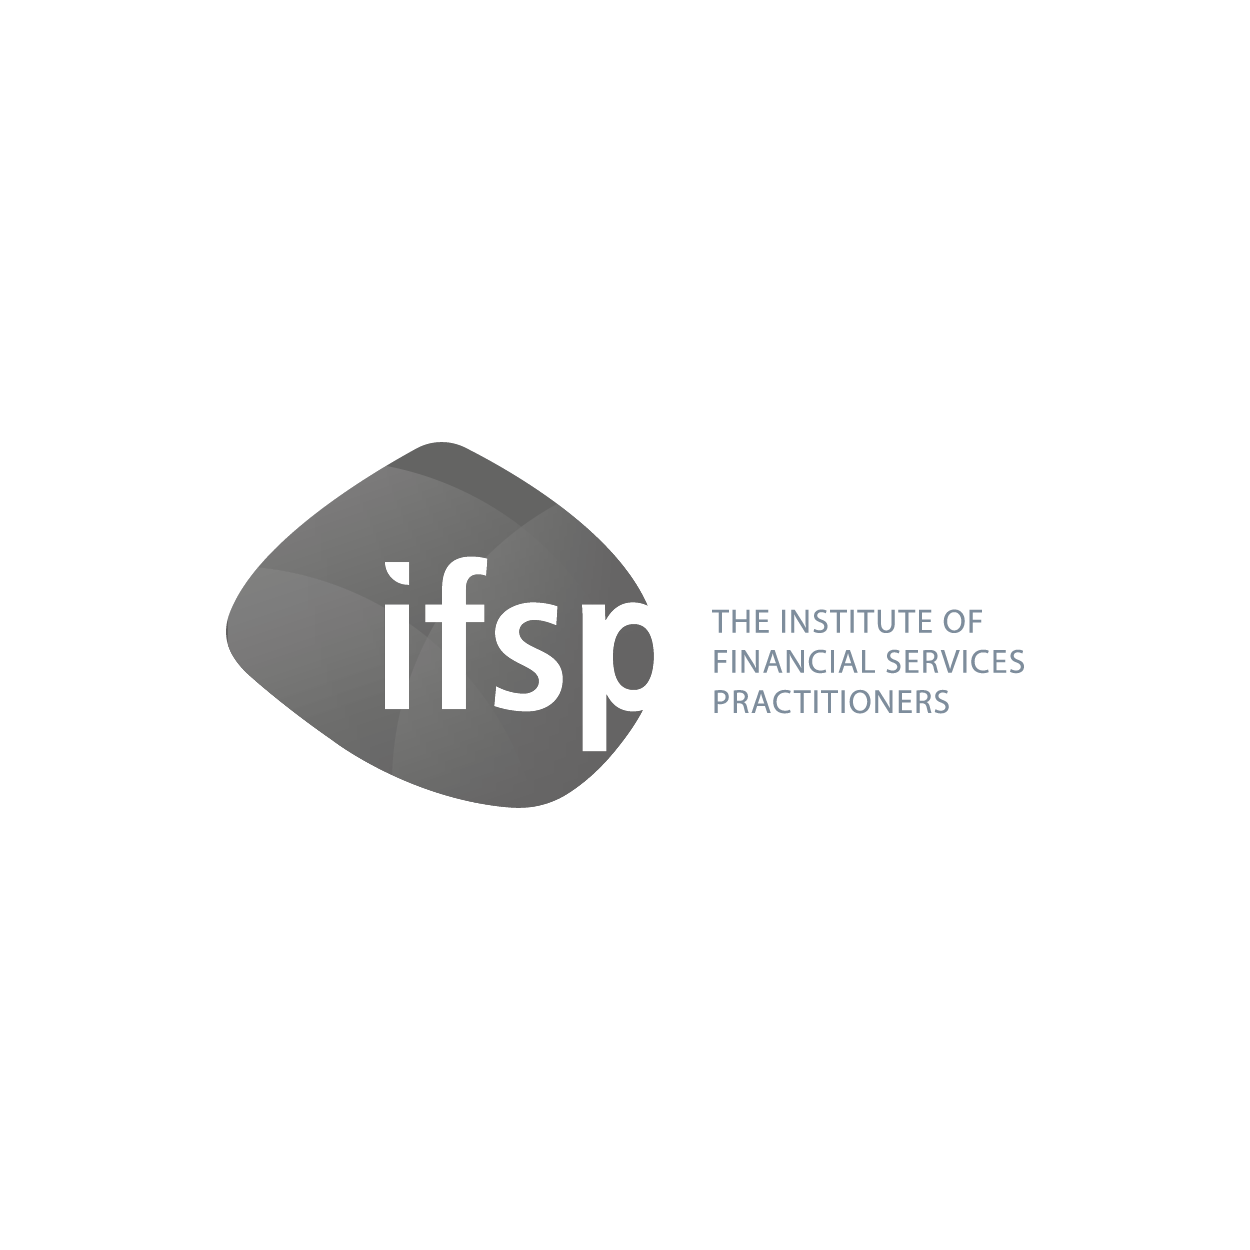 Institute of Financial Services Practitioners logo